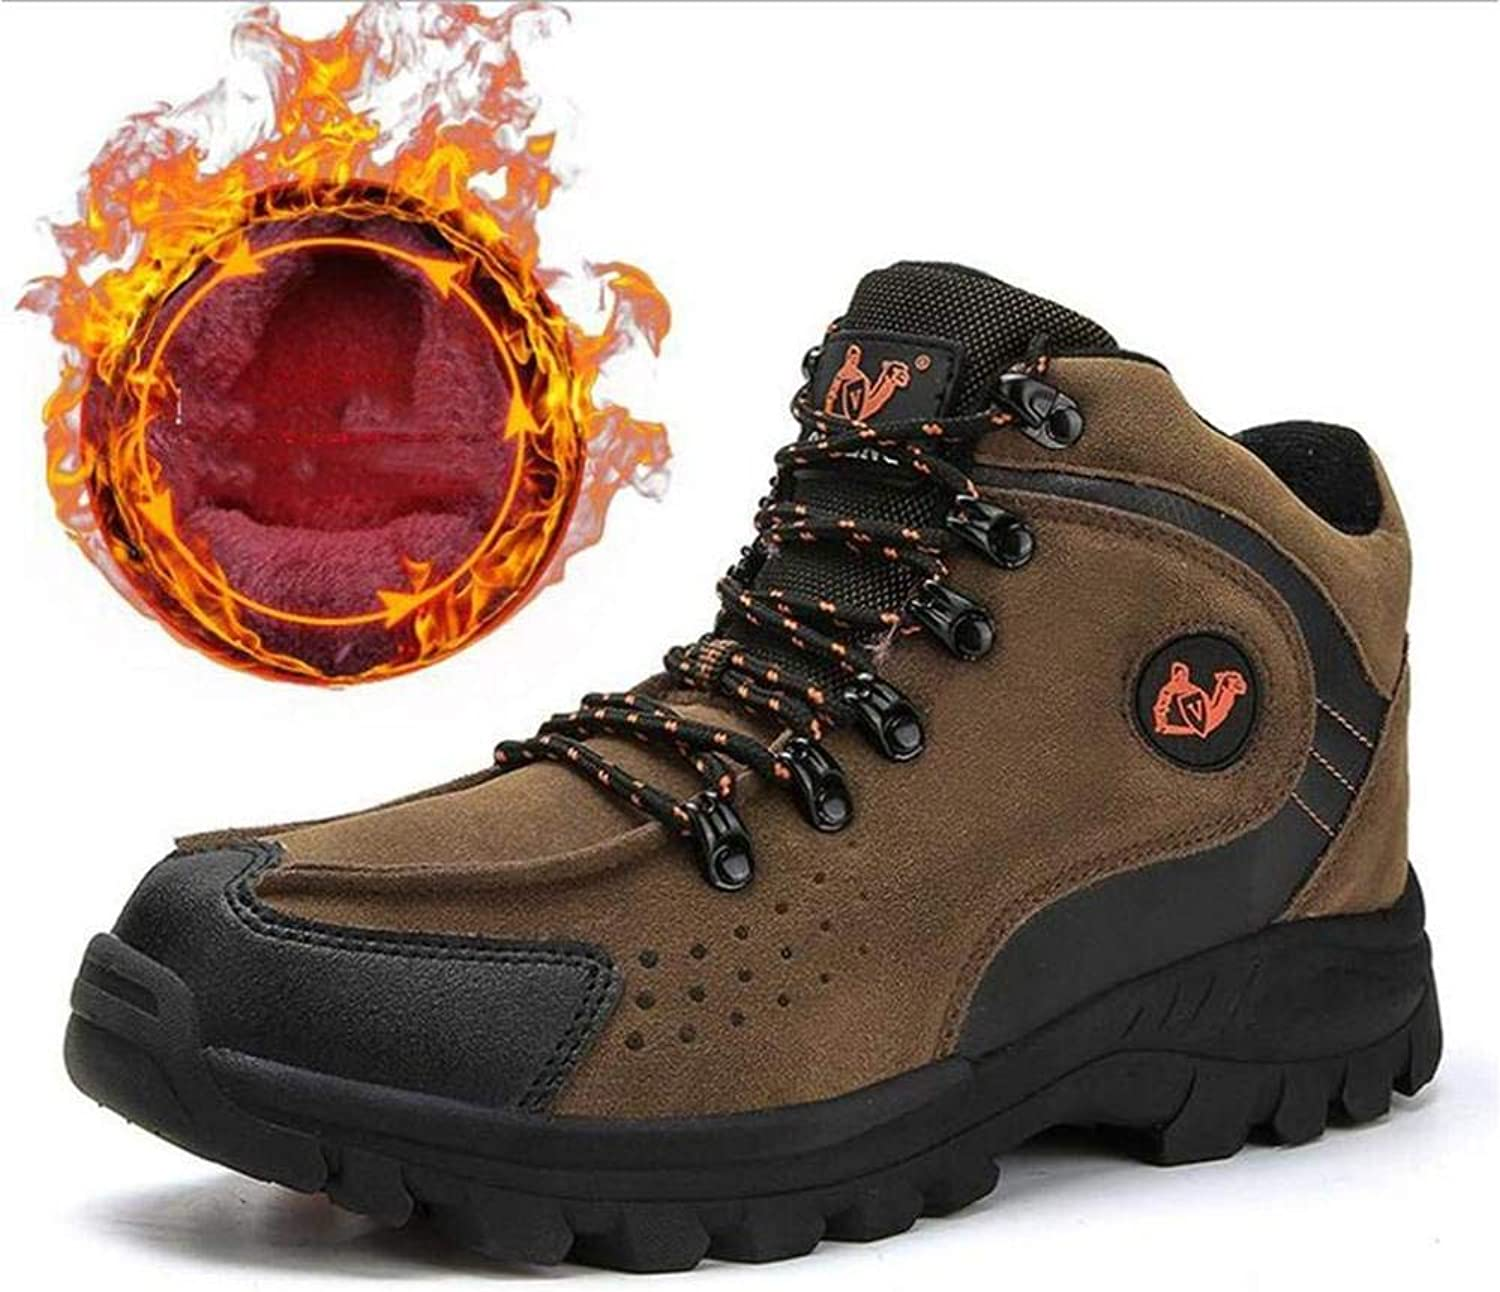 G'z Men's Hiking shoes, Mill Sand Winter High-Top Martins Boots Large Size Outdoor Climbing Sneakers Plus Cashmere Trekking Camping